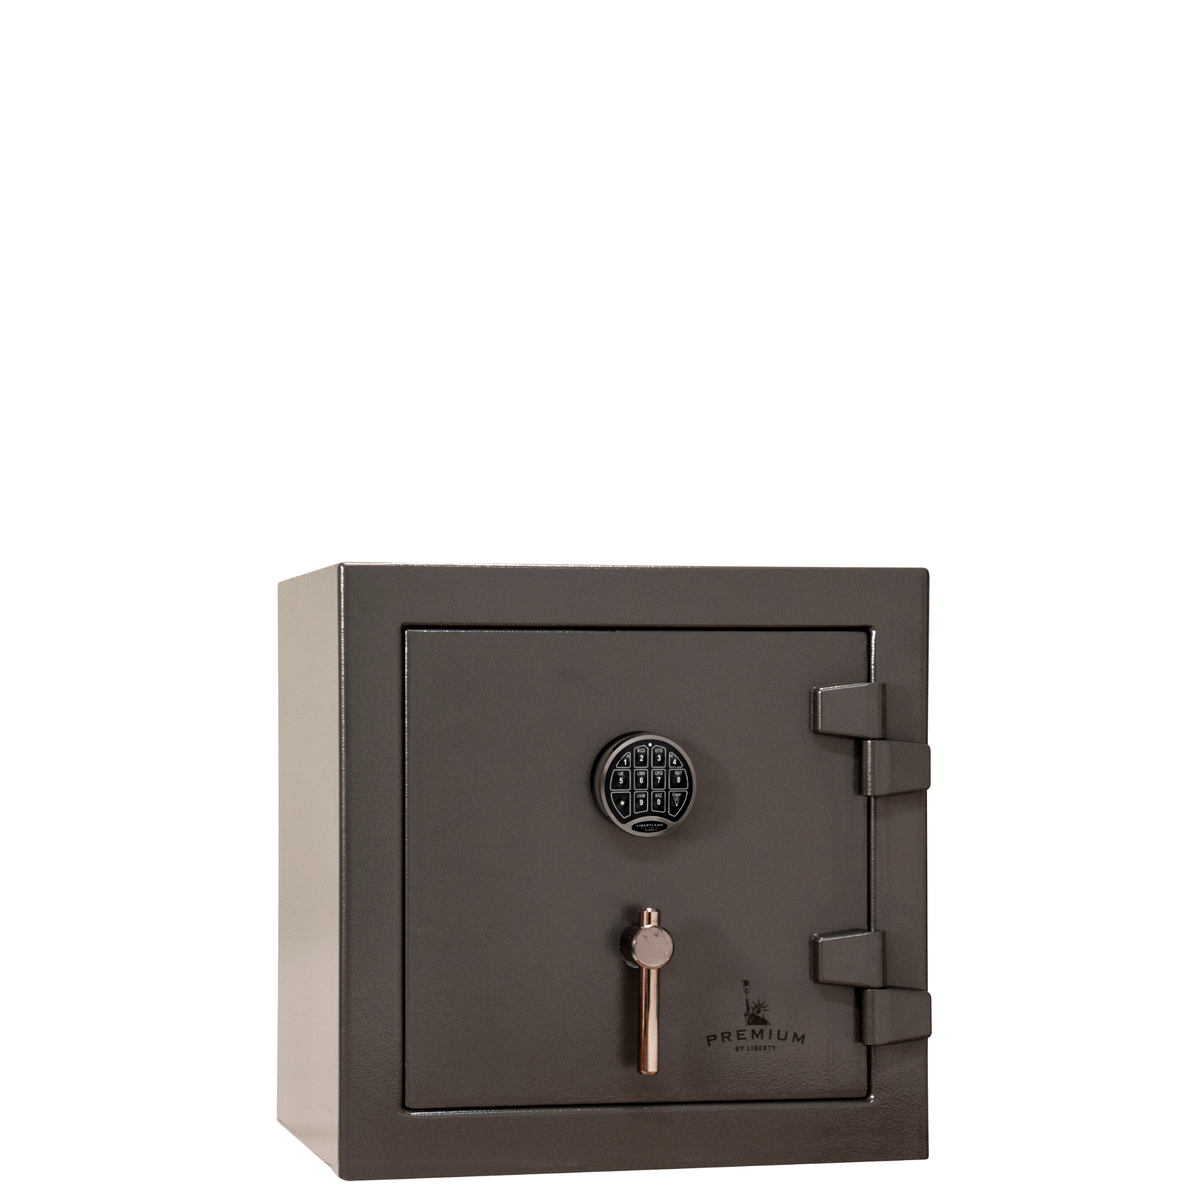 "Premium Home | 05 | 90 Minute Fire Protection | Gray | Electronic Lock | Dimensions: 24""(H) x 24""(W) x 22.5""(D)"